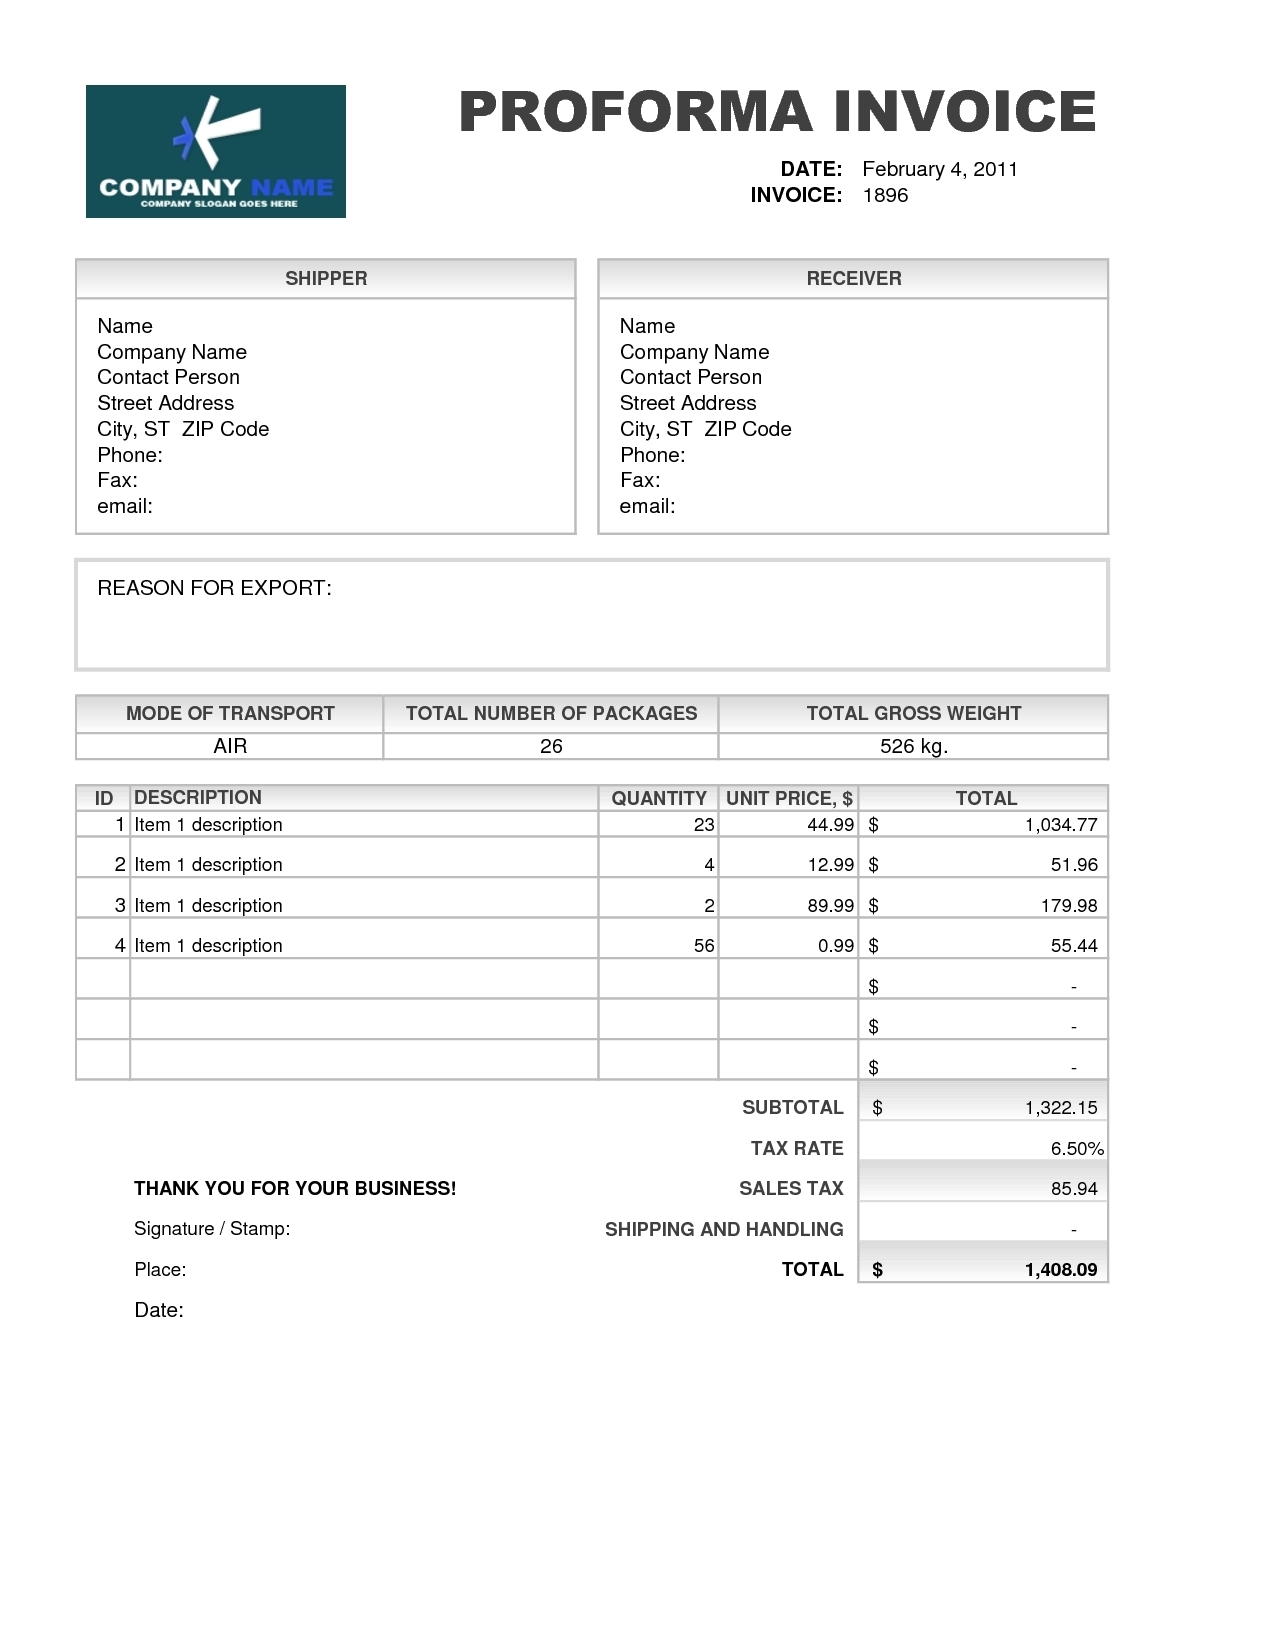 samples of proforma invoice invoice template free 2016 pro forma invoices